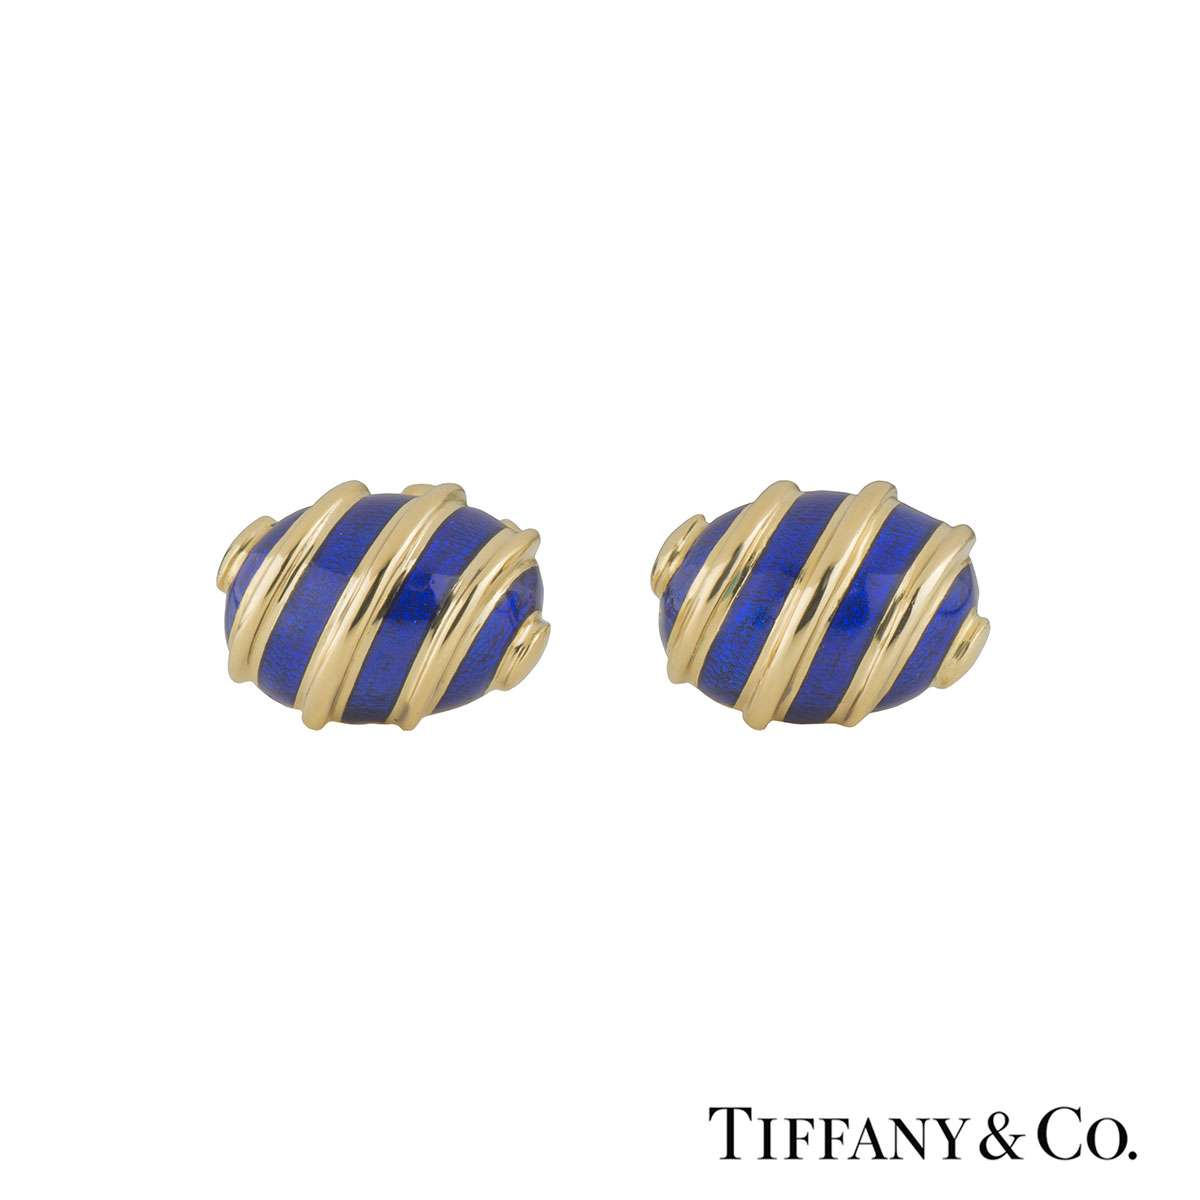 Tiffany & Co. Yellow Gold Enamel Olive Schlumberger Cufflinks